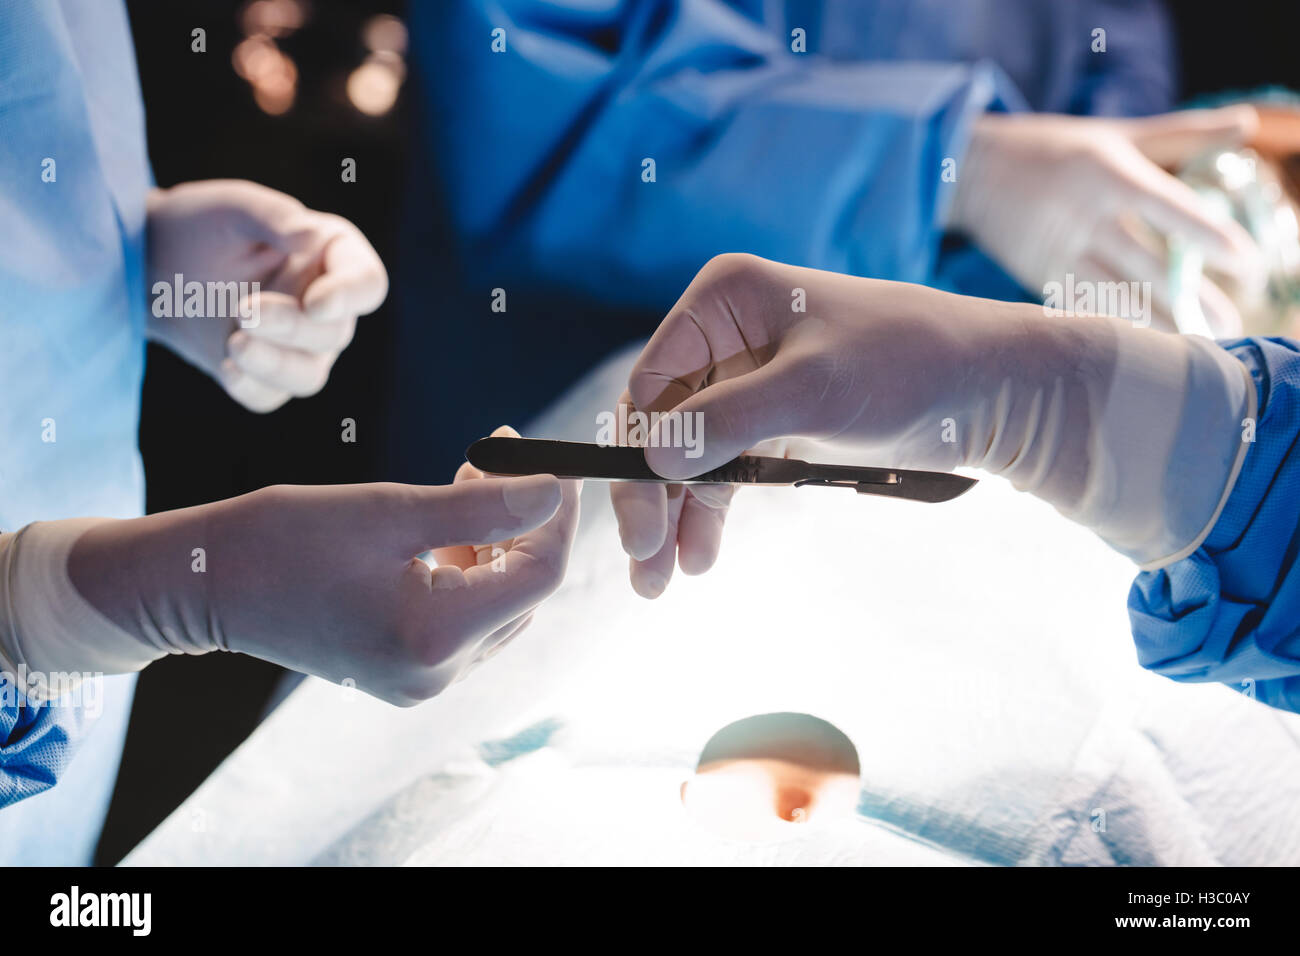 Surgeons giving operation blade to colleague in operation room - Stock Image